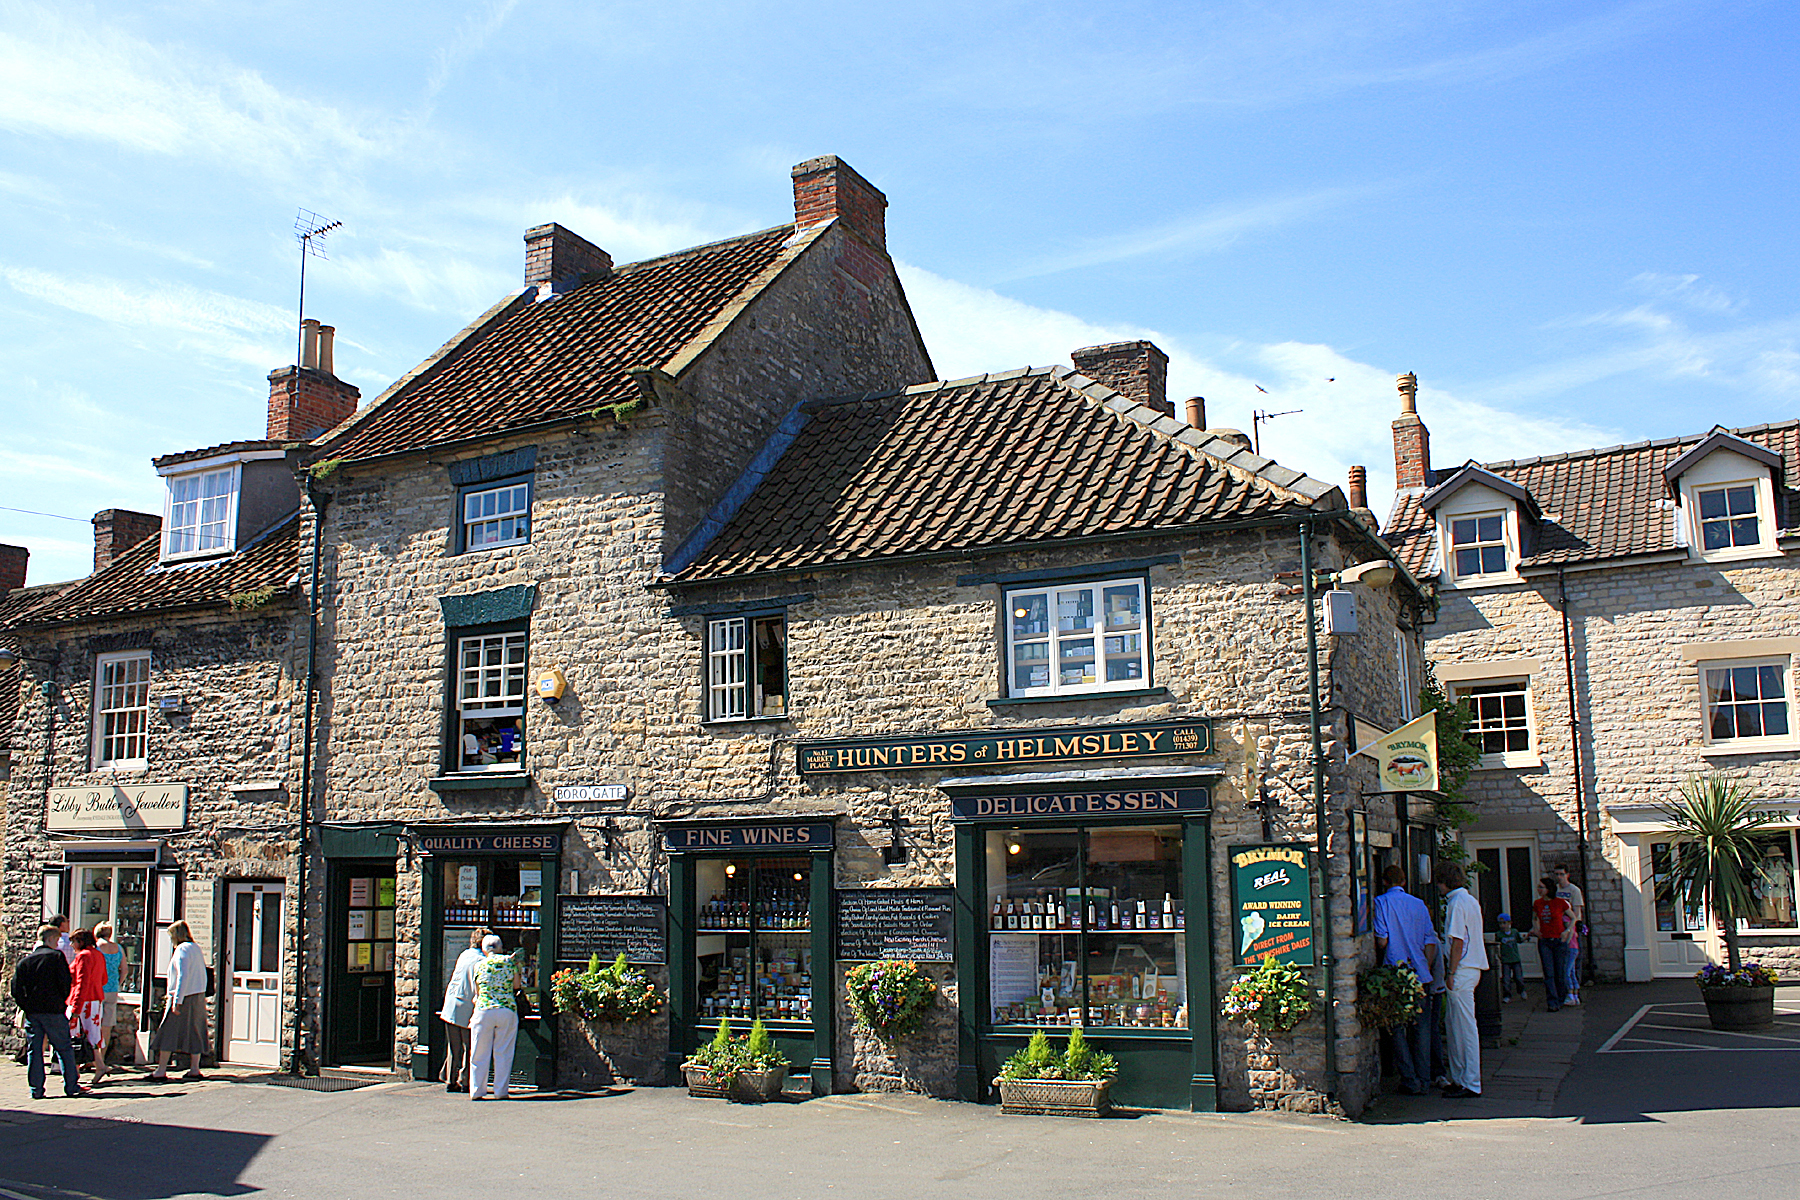 The Hunters of Helmsley store